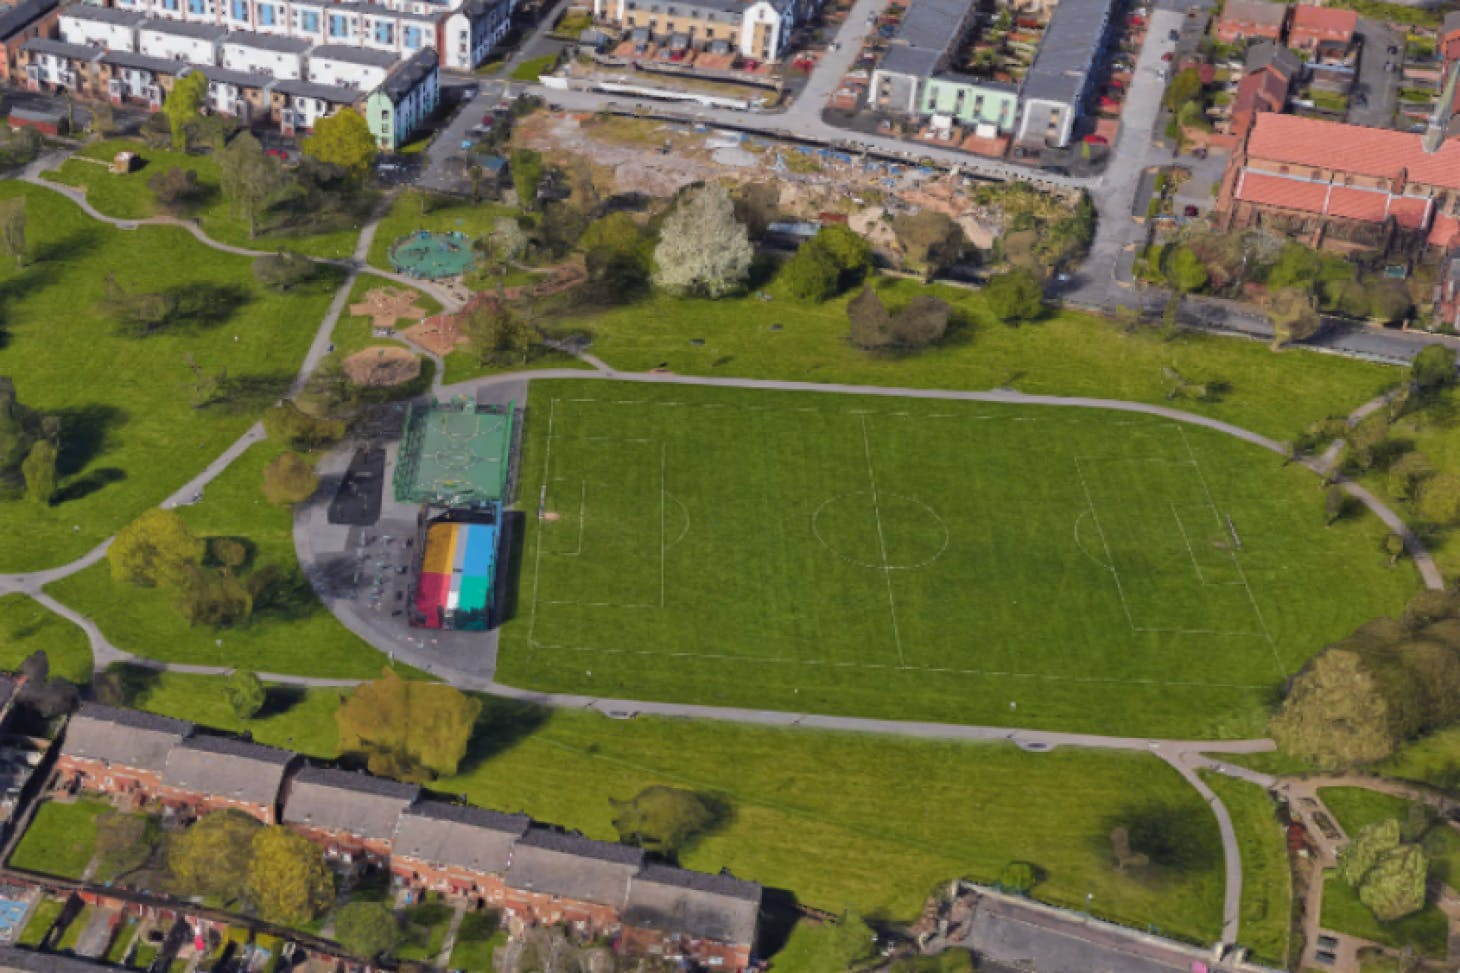 Ordsall Park 11 a side | Grass football pitch